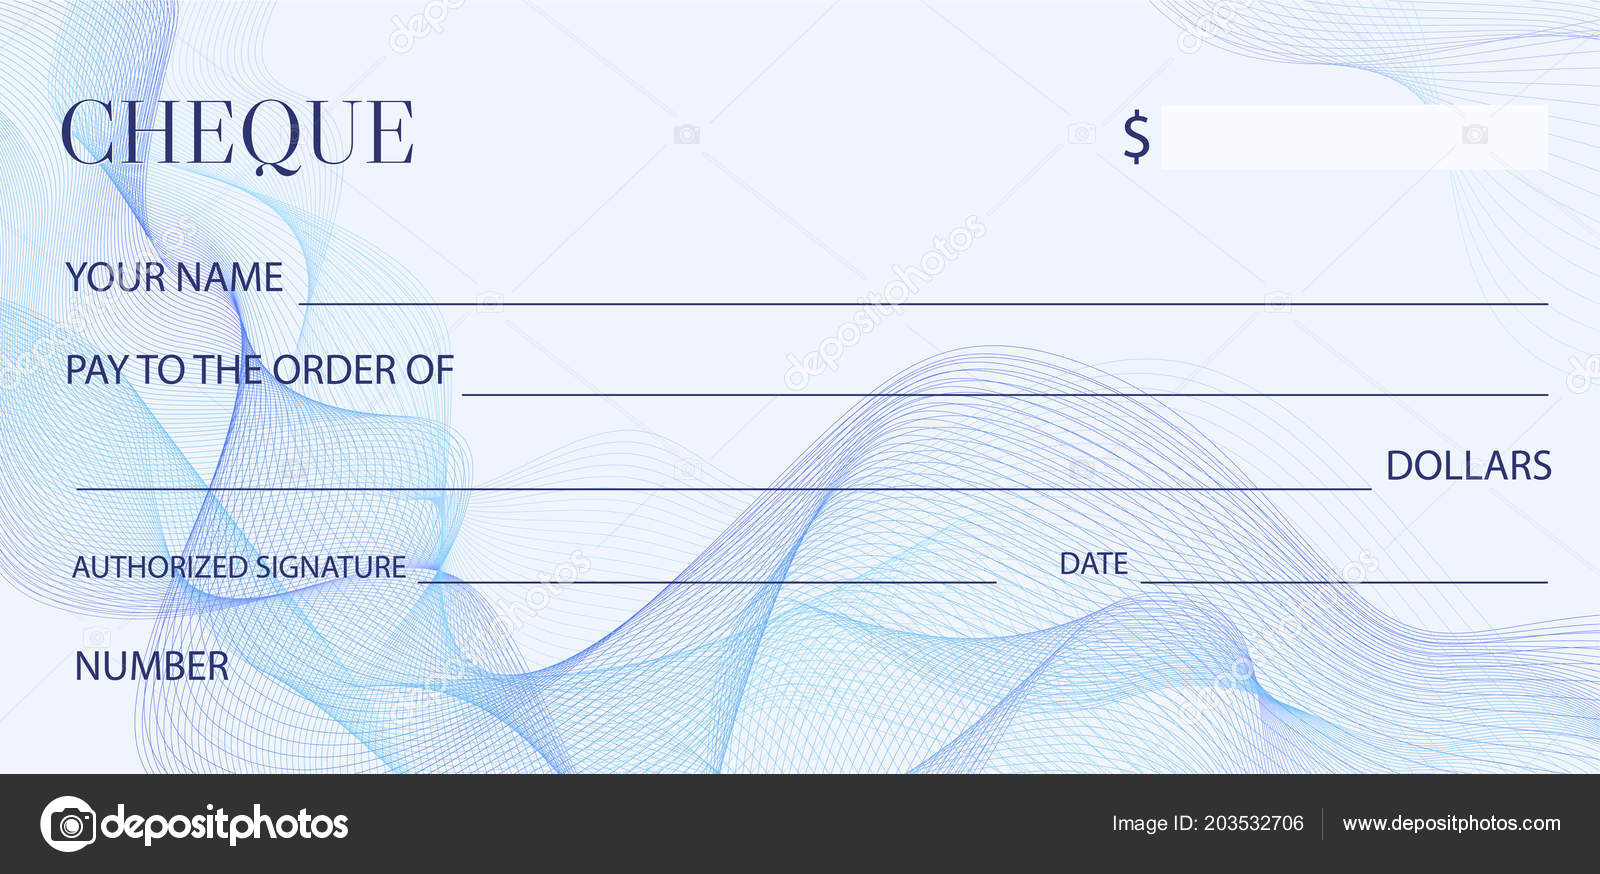 Cheque Check Template Chequebook Template Blank Bank Cheque ...